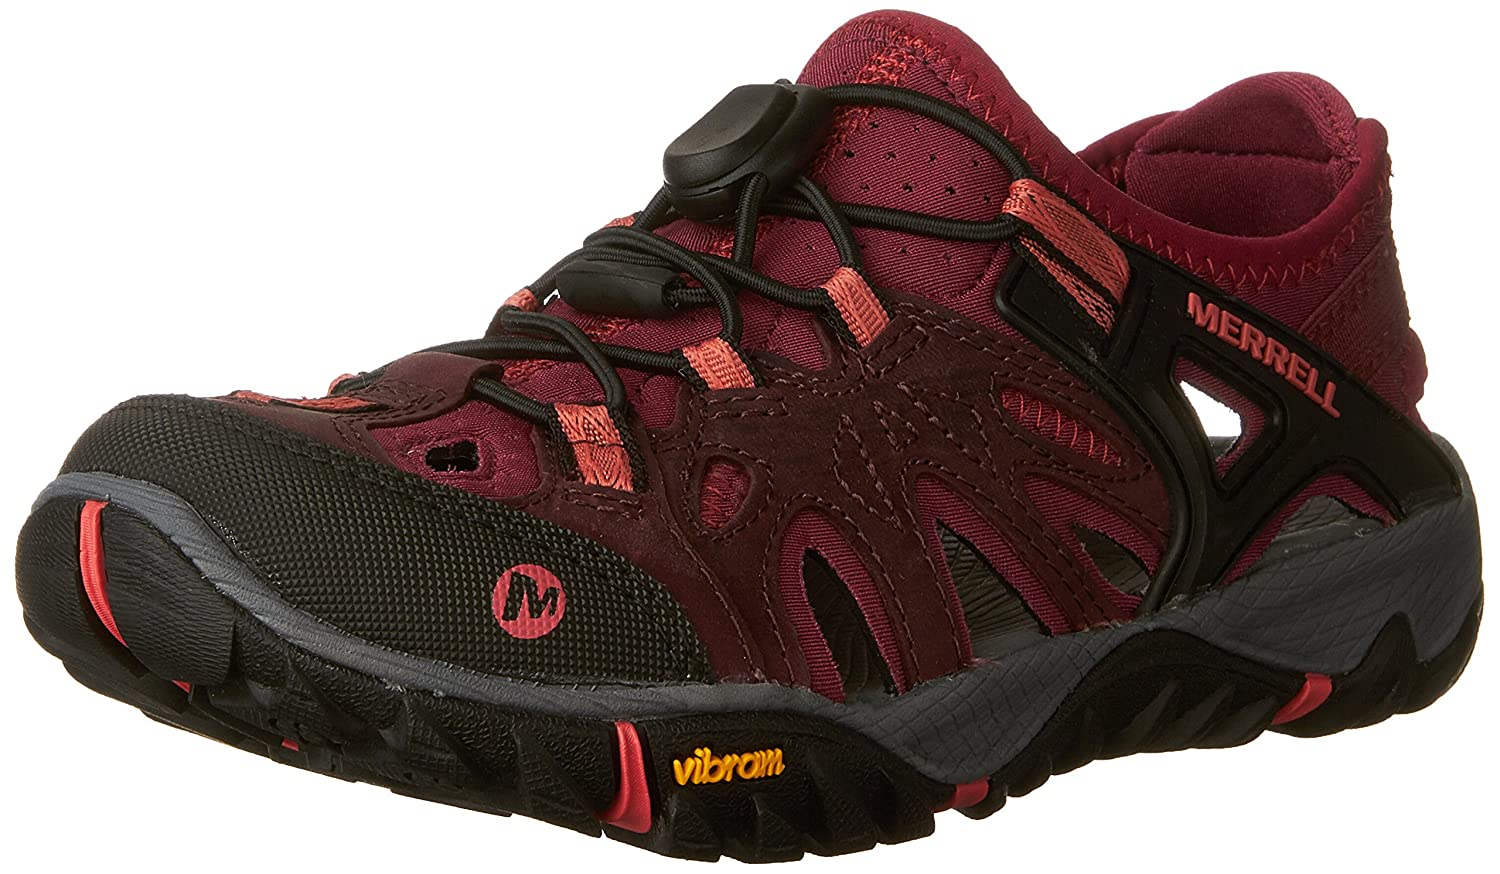 MultiCouleure (Vineyard Wine) 41 EU Merrell All Out Blaze Sieve, Chaussures de Randonnée Basses Femme